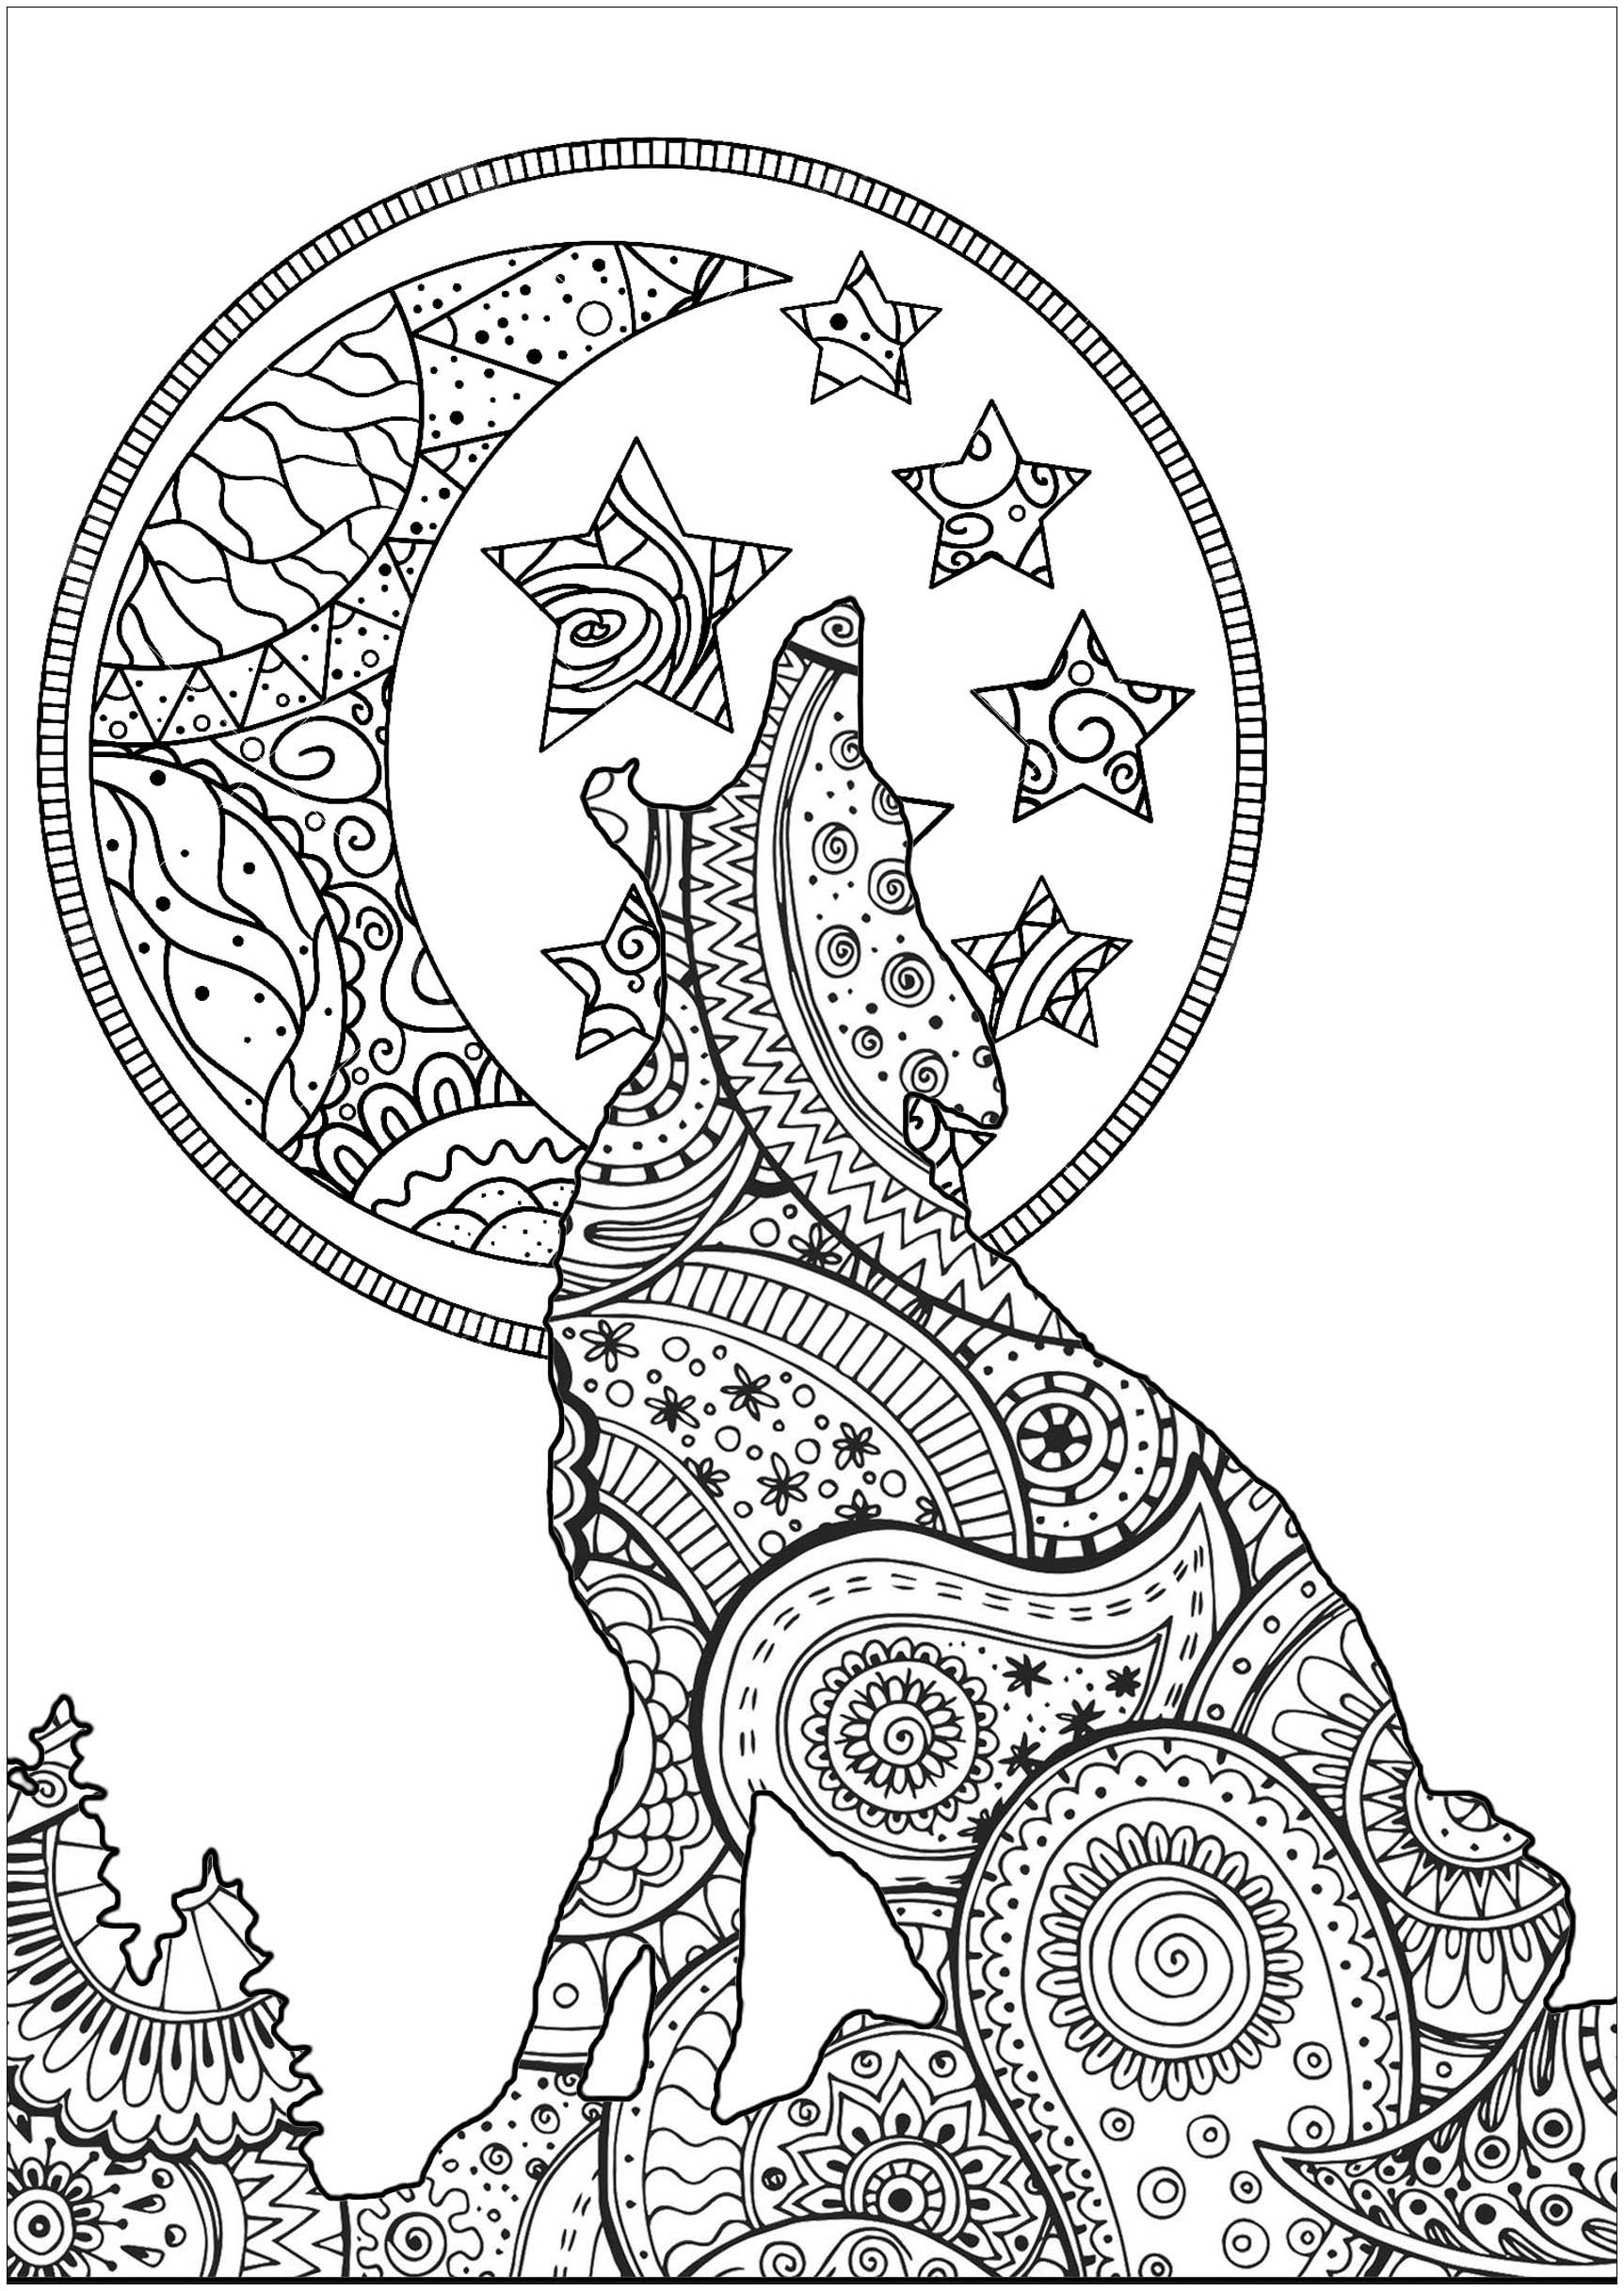 color in wolf wolf howling coloring pages at getdrawings free download color wolf in